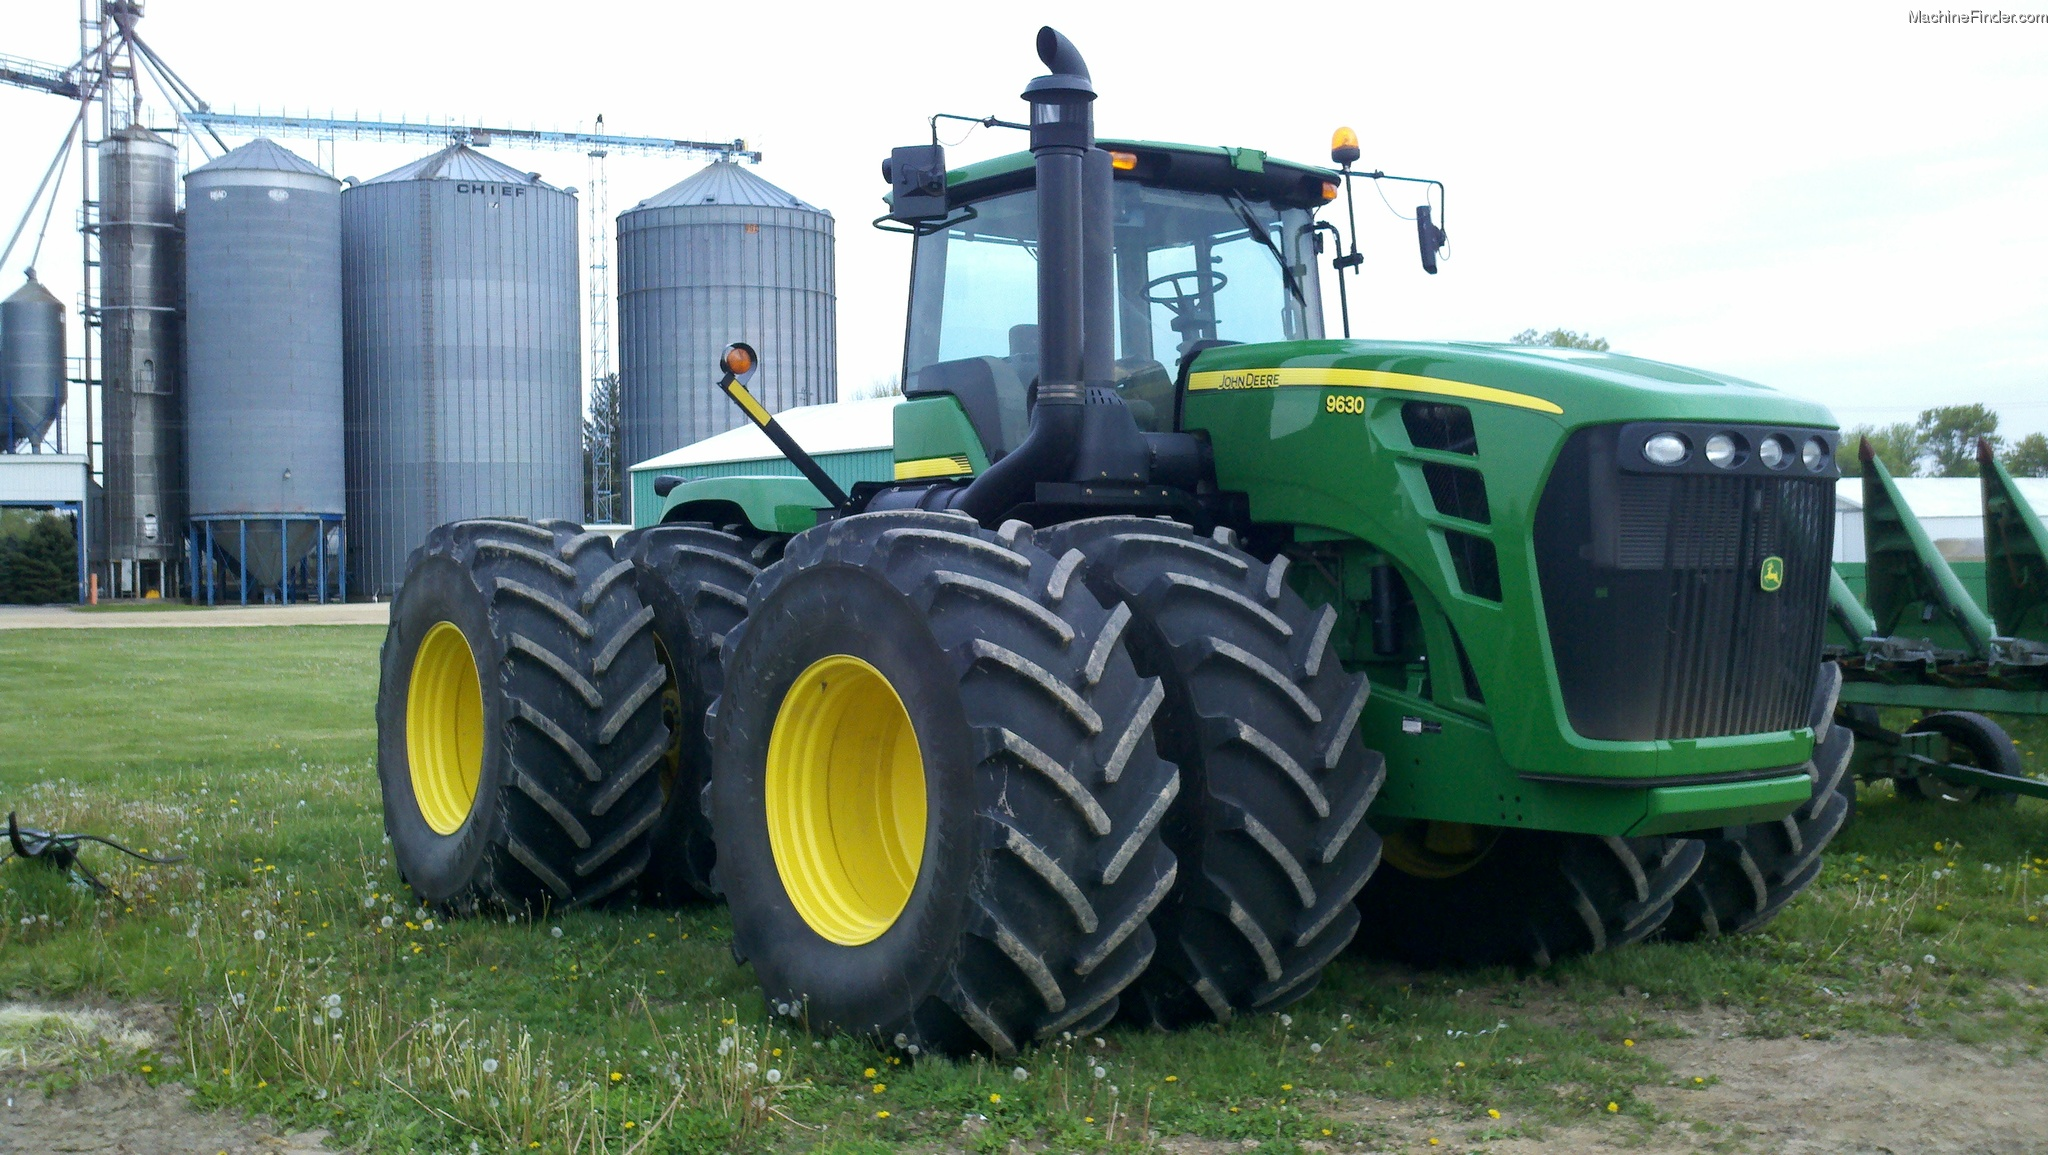 An In-Depth Look at the John Deere 9630